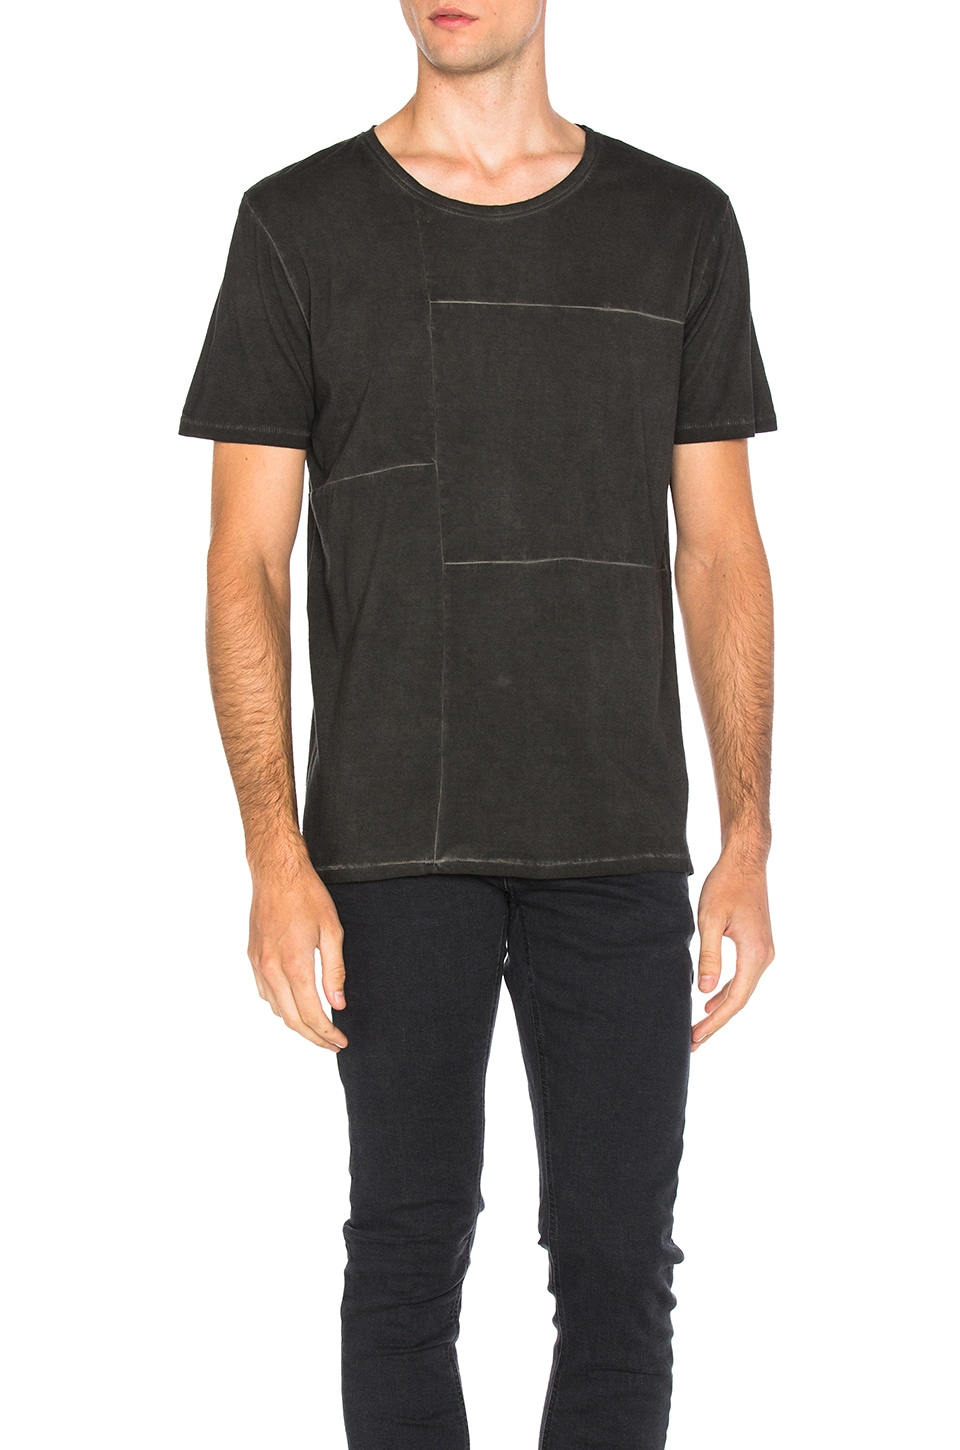 Patch Tee by Nudie Jeans